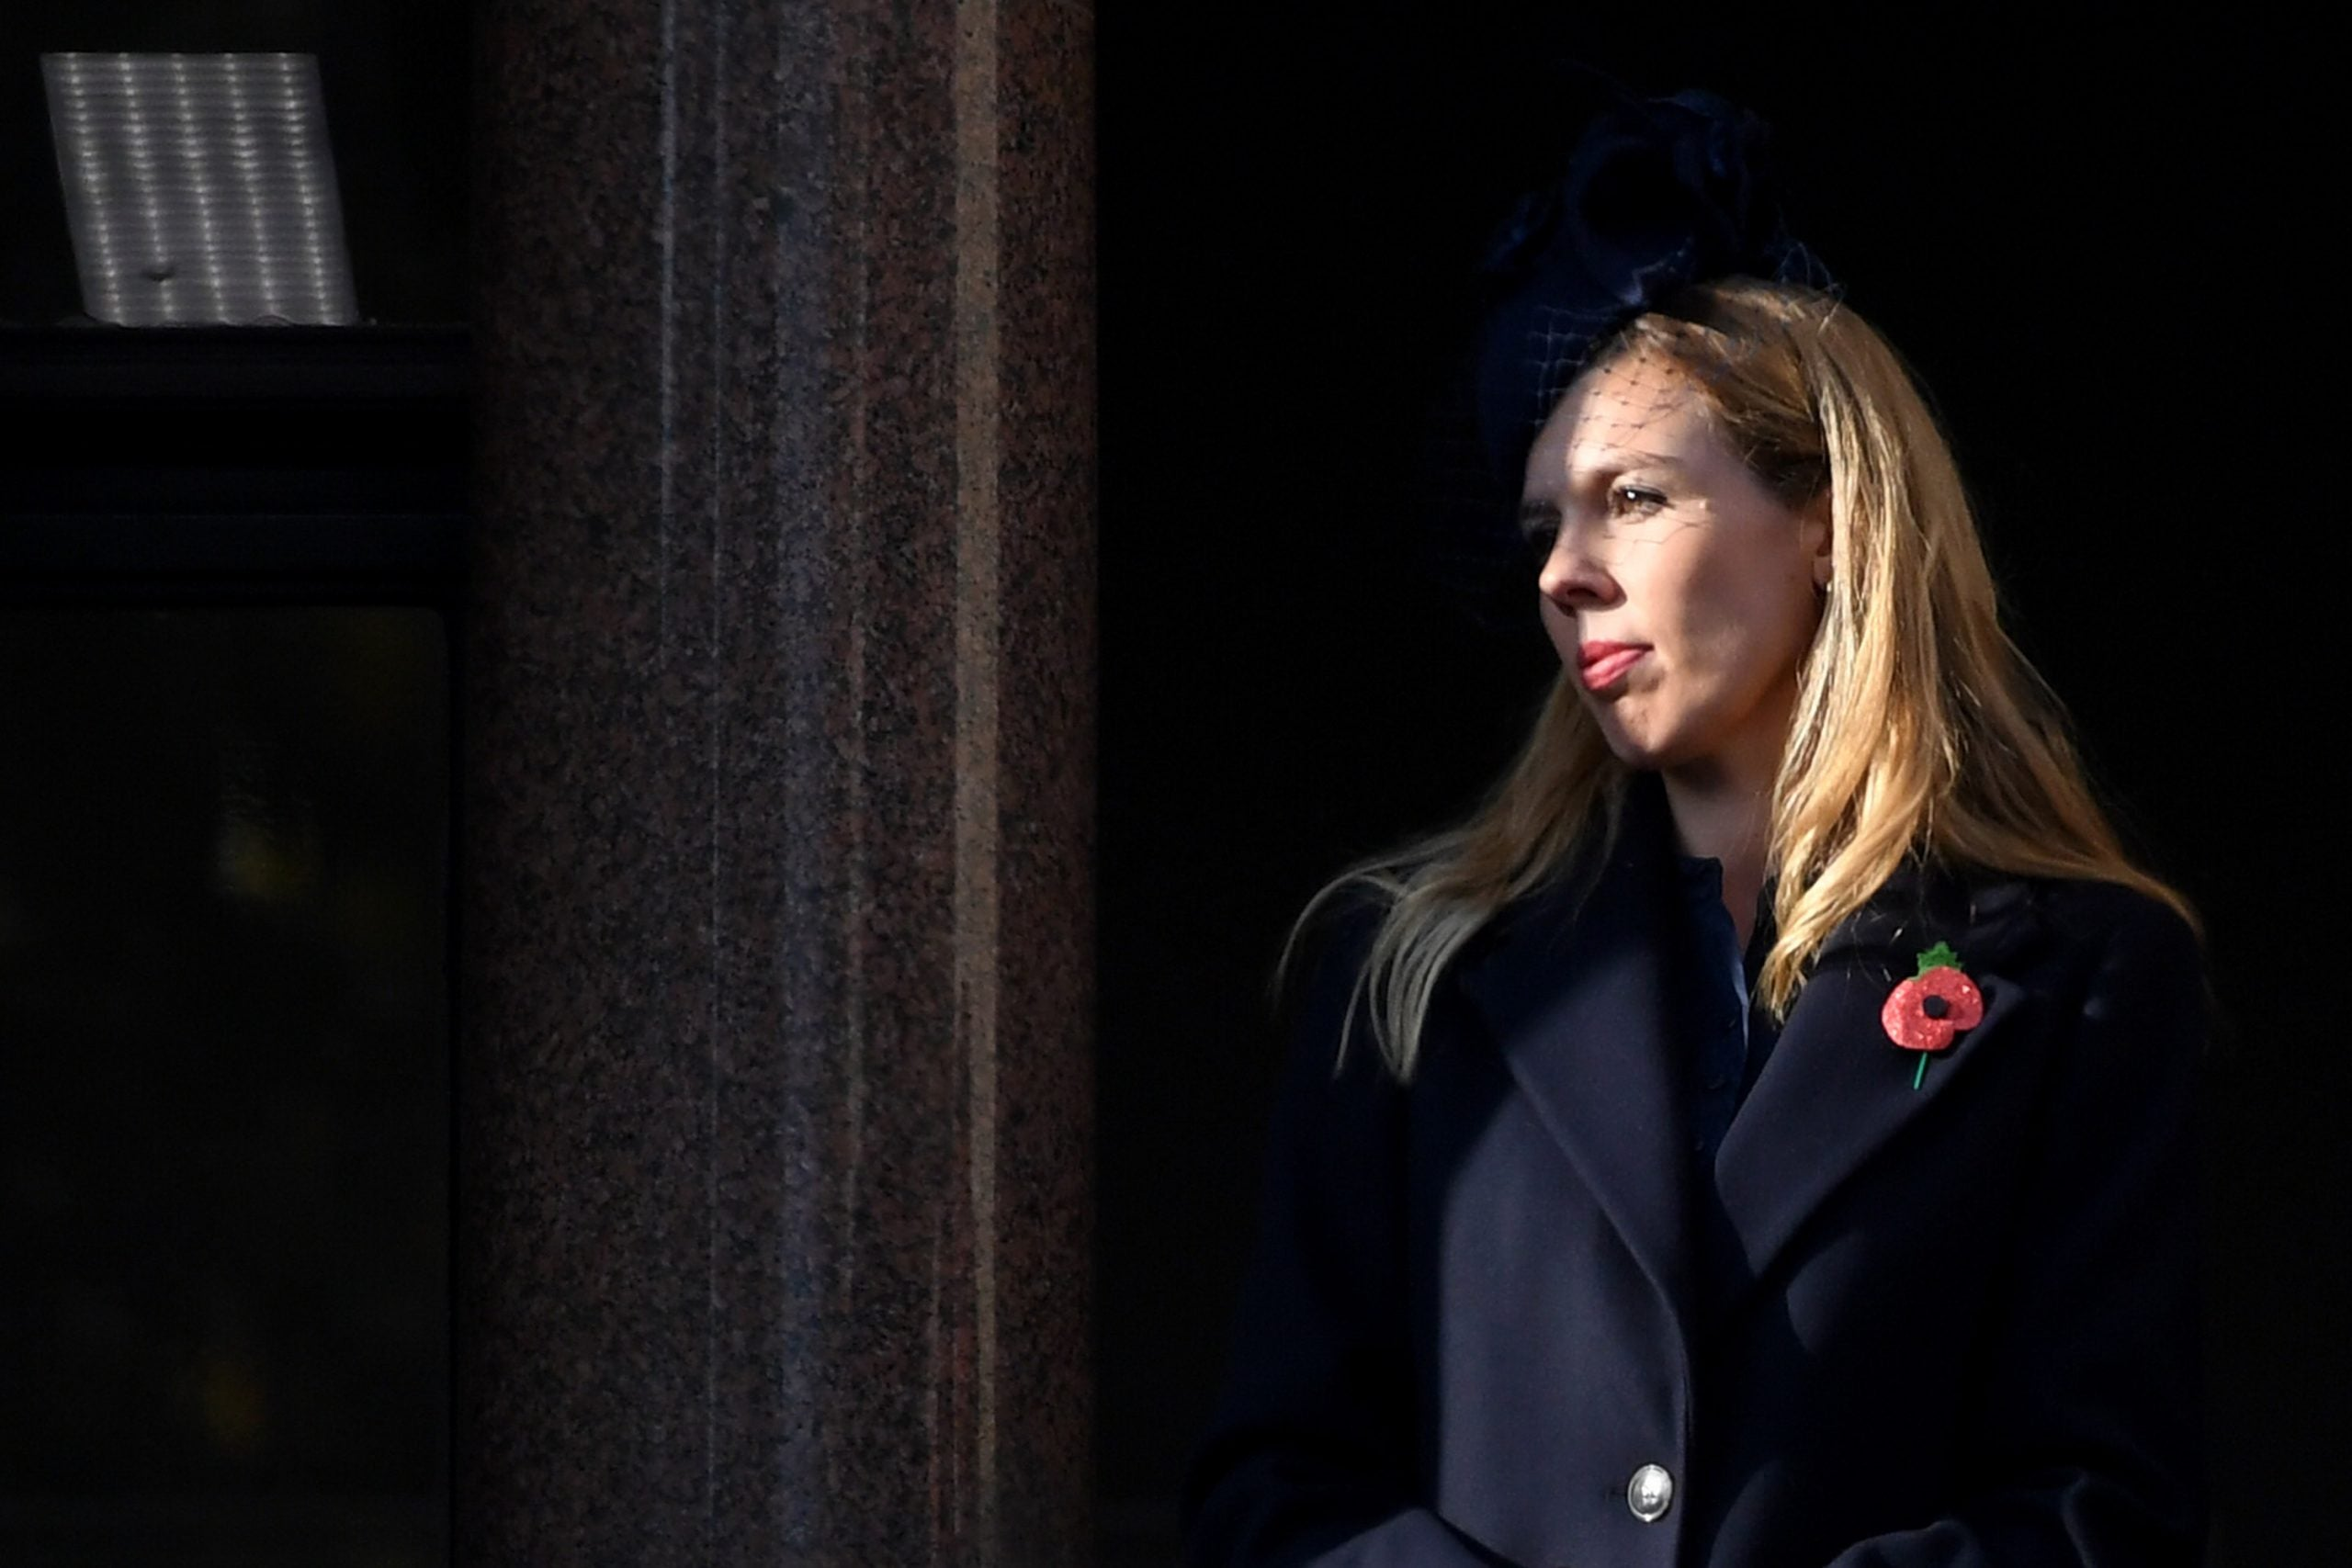 Commons Confidential: Carrie On Downing Street